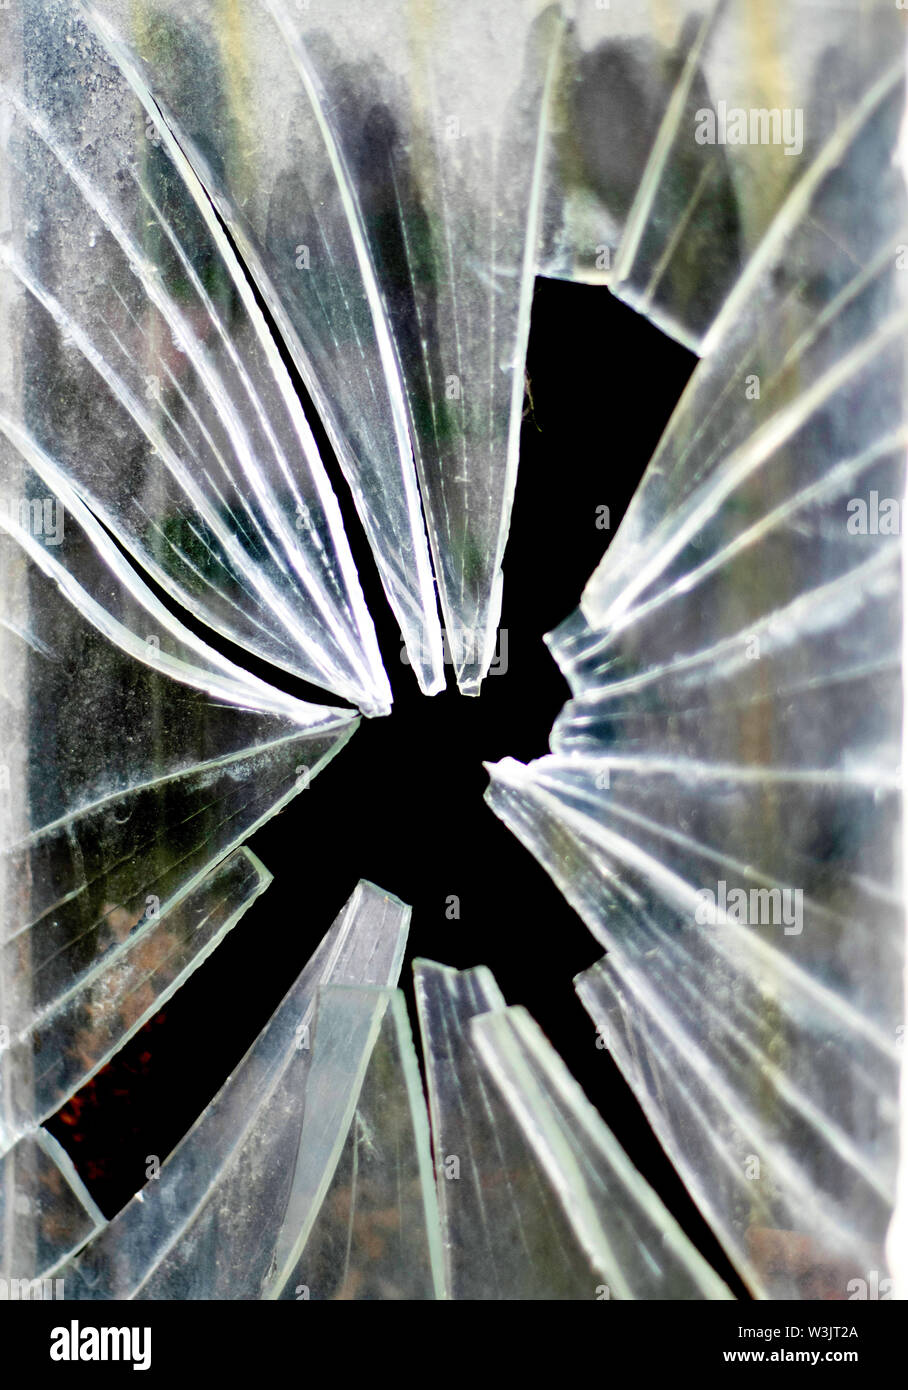 Sharp shards of broken glass from a smashed window pane - Stock Image